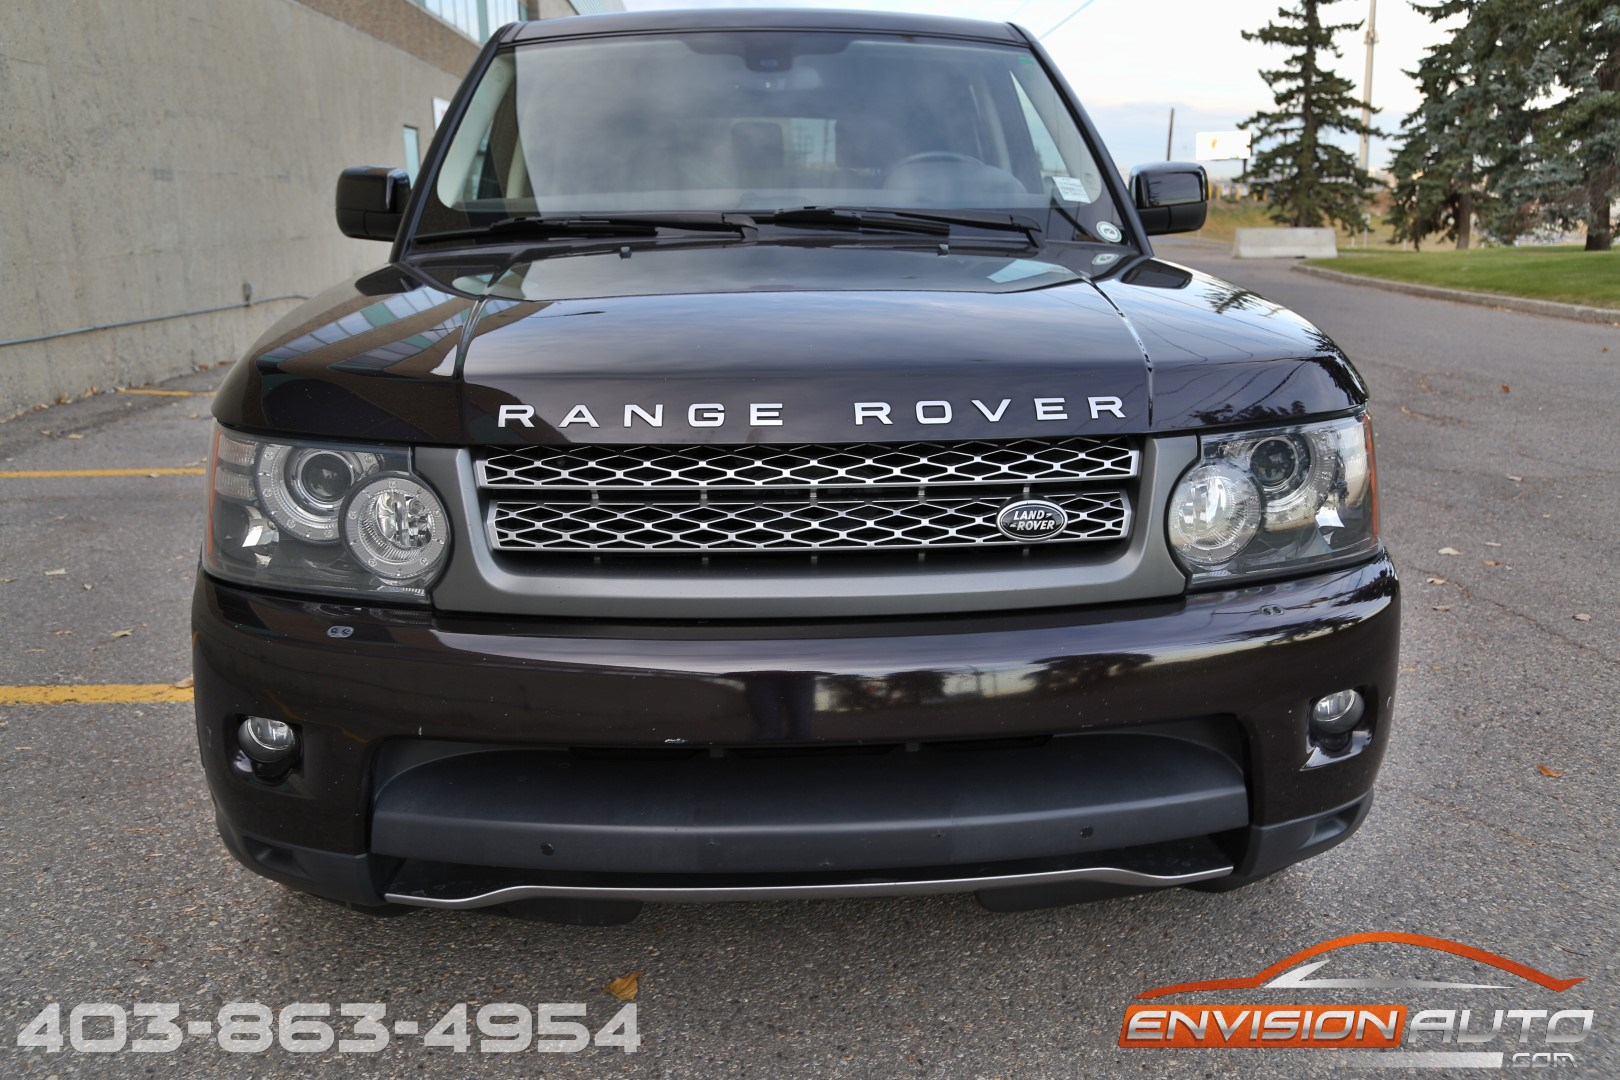 2010 land rover range rover sport supercharged envision auto. Black Bedroom Furniture Sets. Home Design Ideas